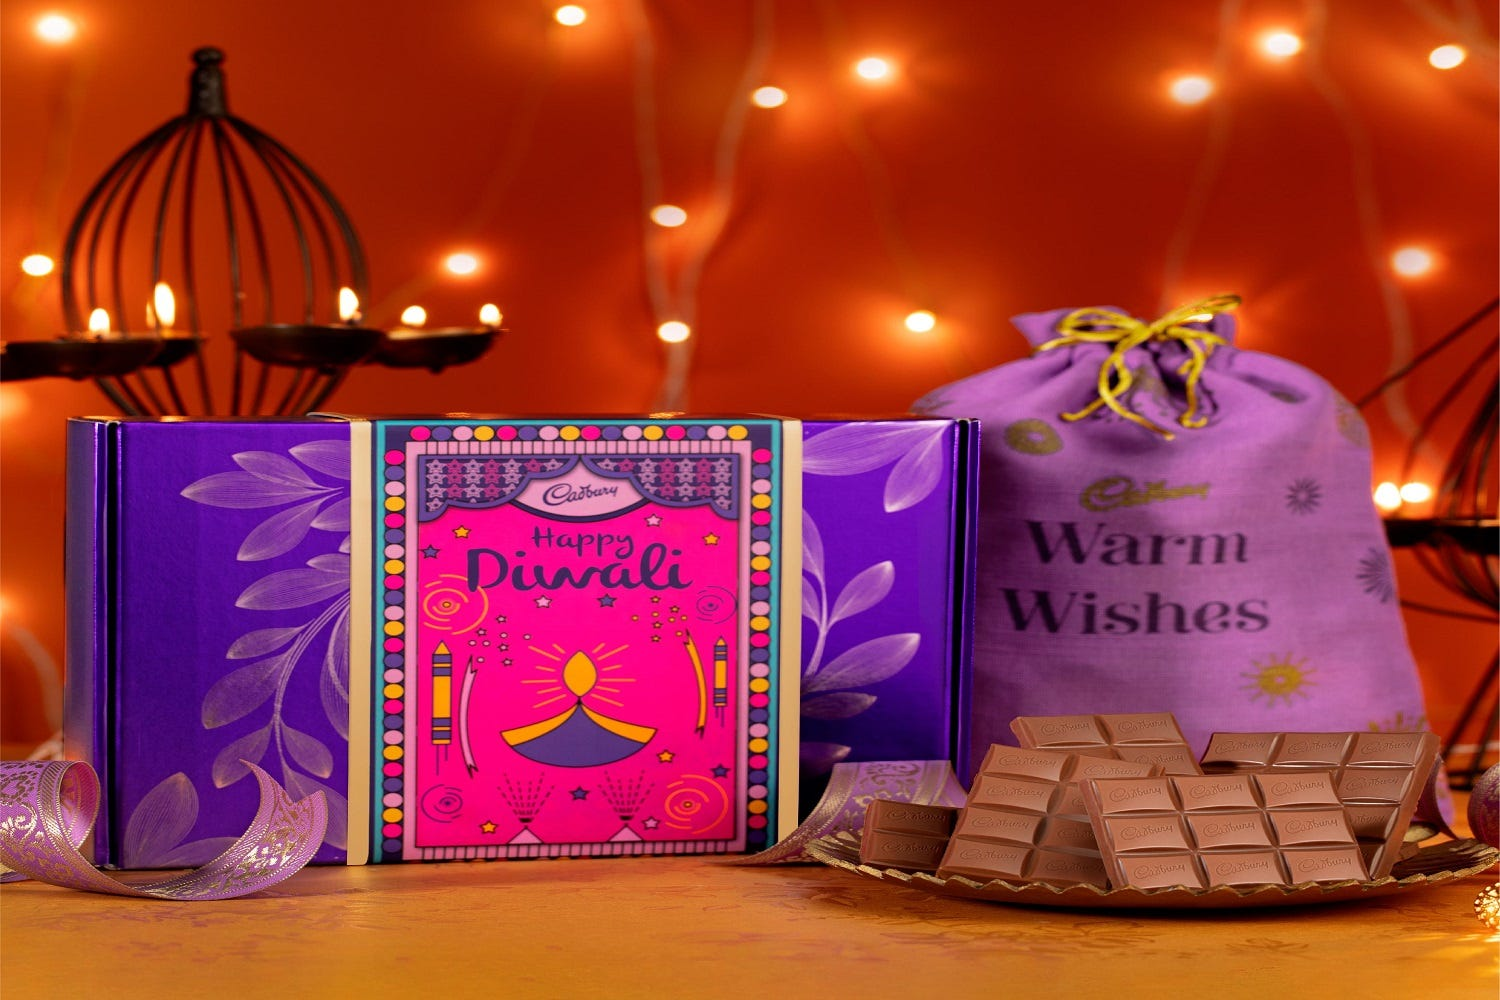 Diwali chocolate – Wishing one and all with sweetness galore